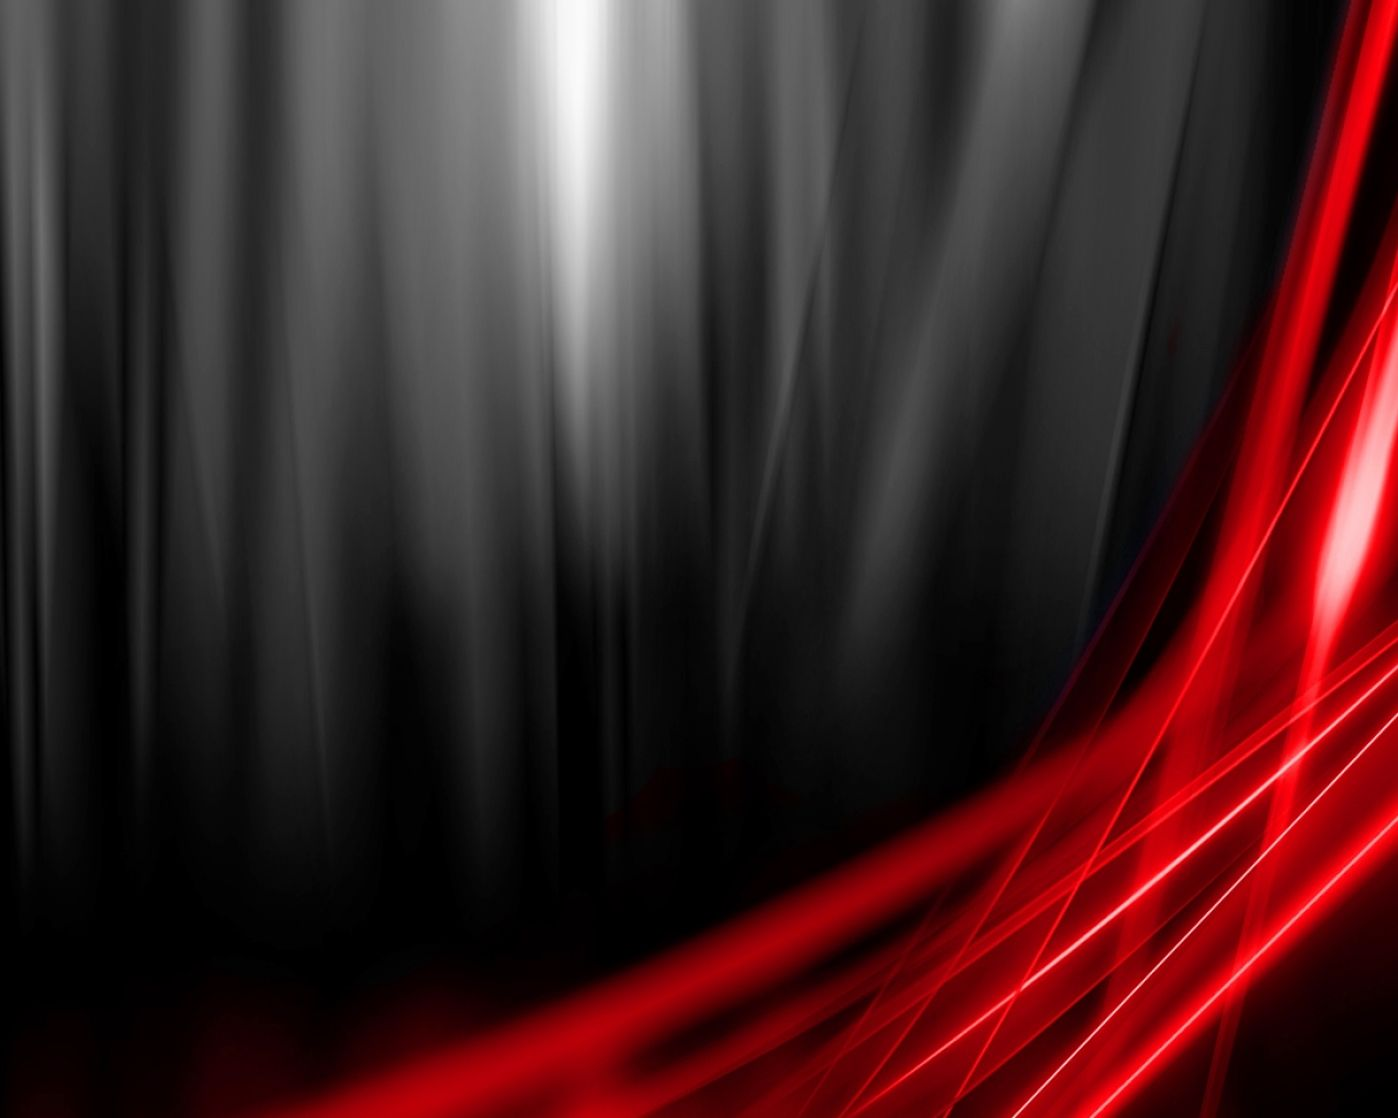 Red white and black abstract 2015 03 16 10 38 53 resolution